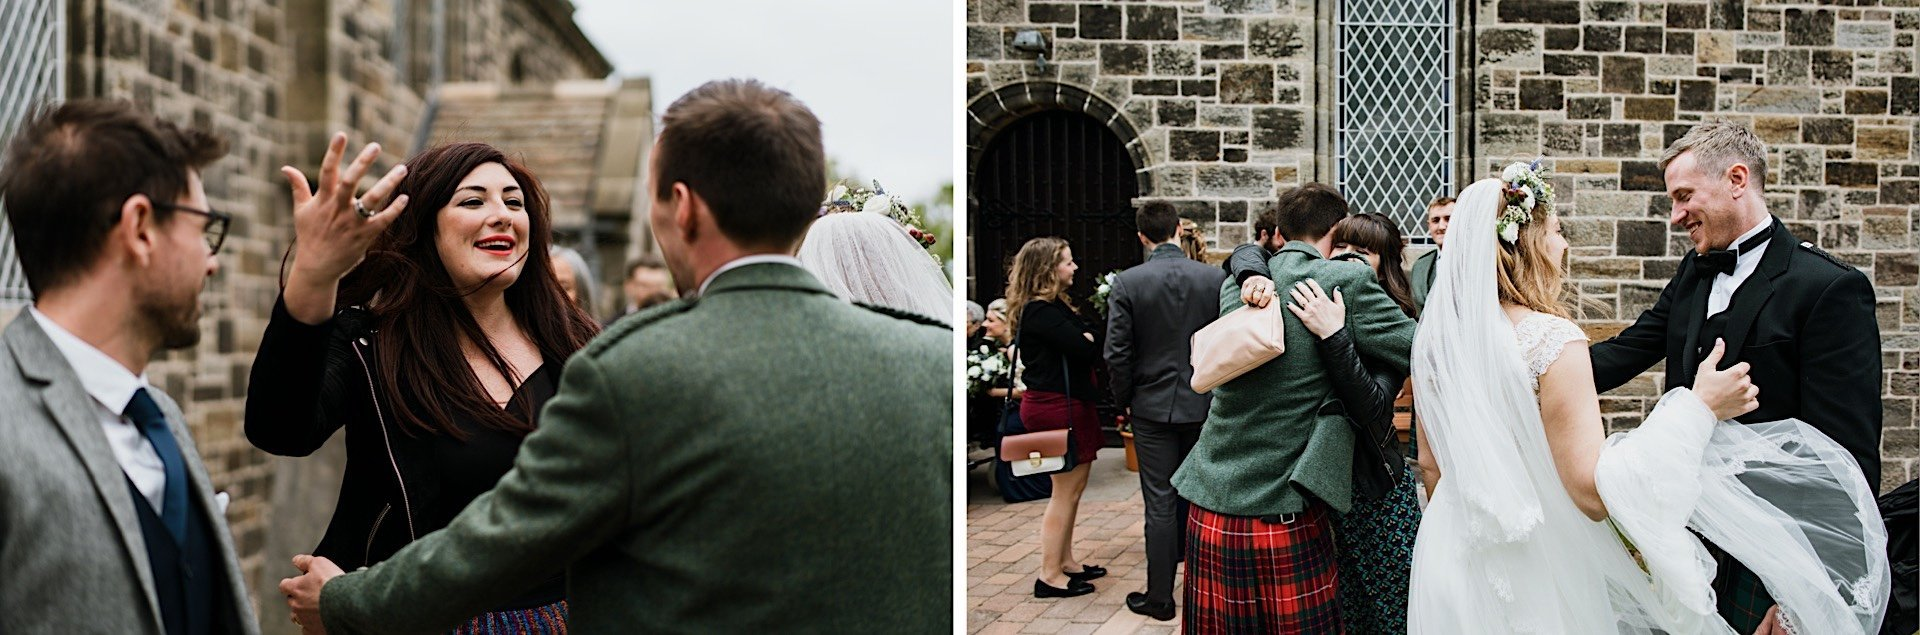 guest congratulating church couple guests Wedding greeting groom outside